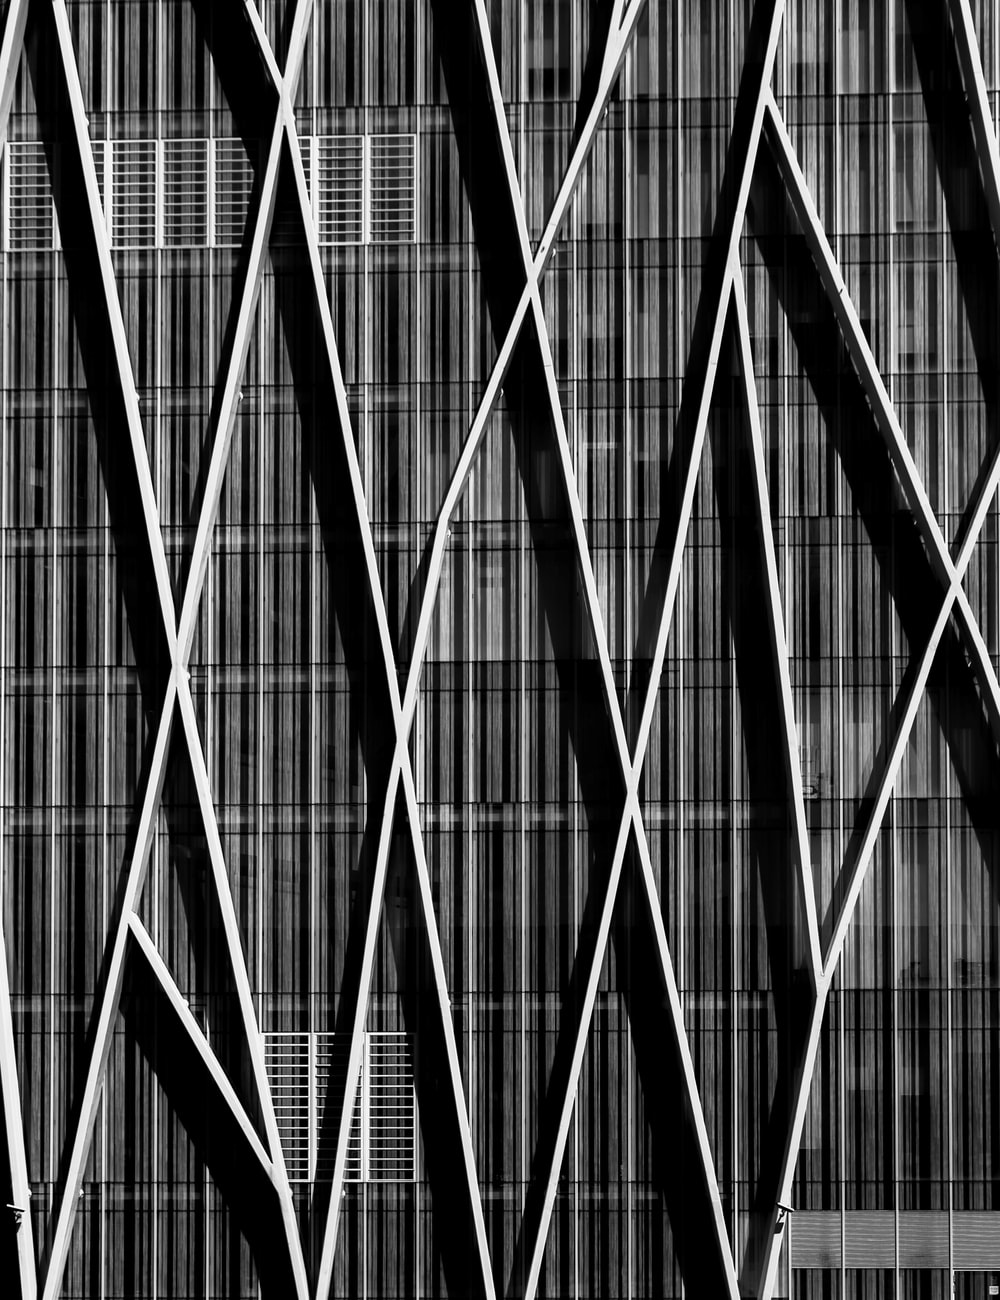 Bw architecture 100 best free architecture black and white